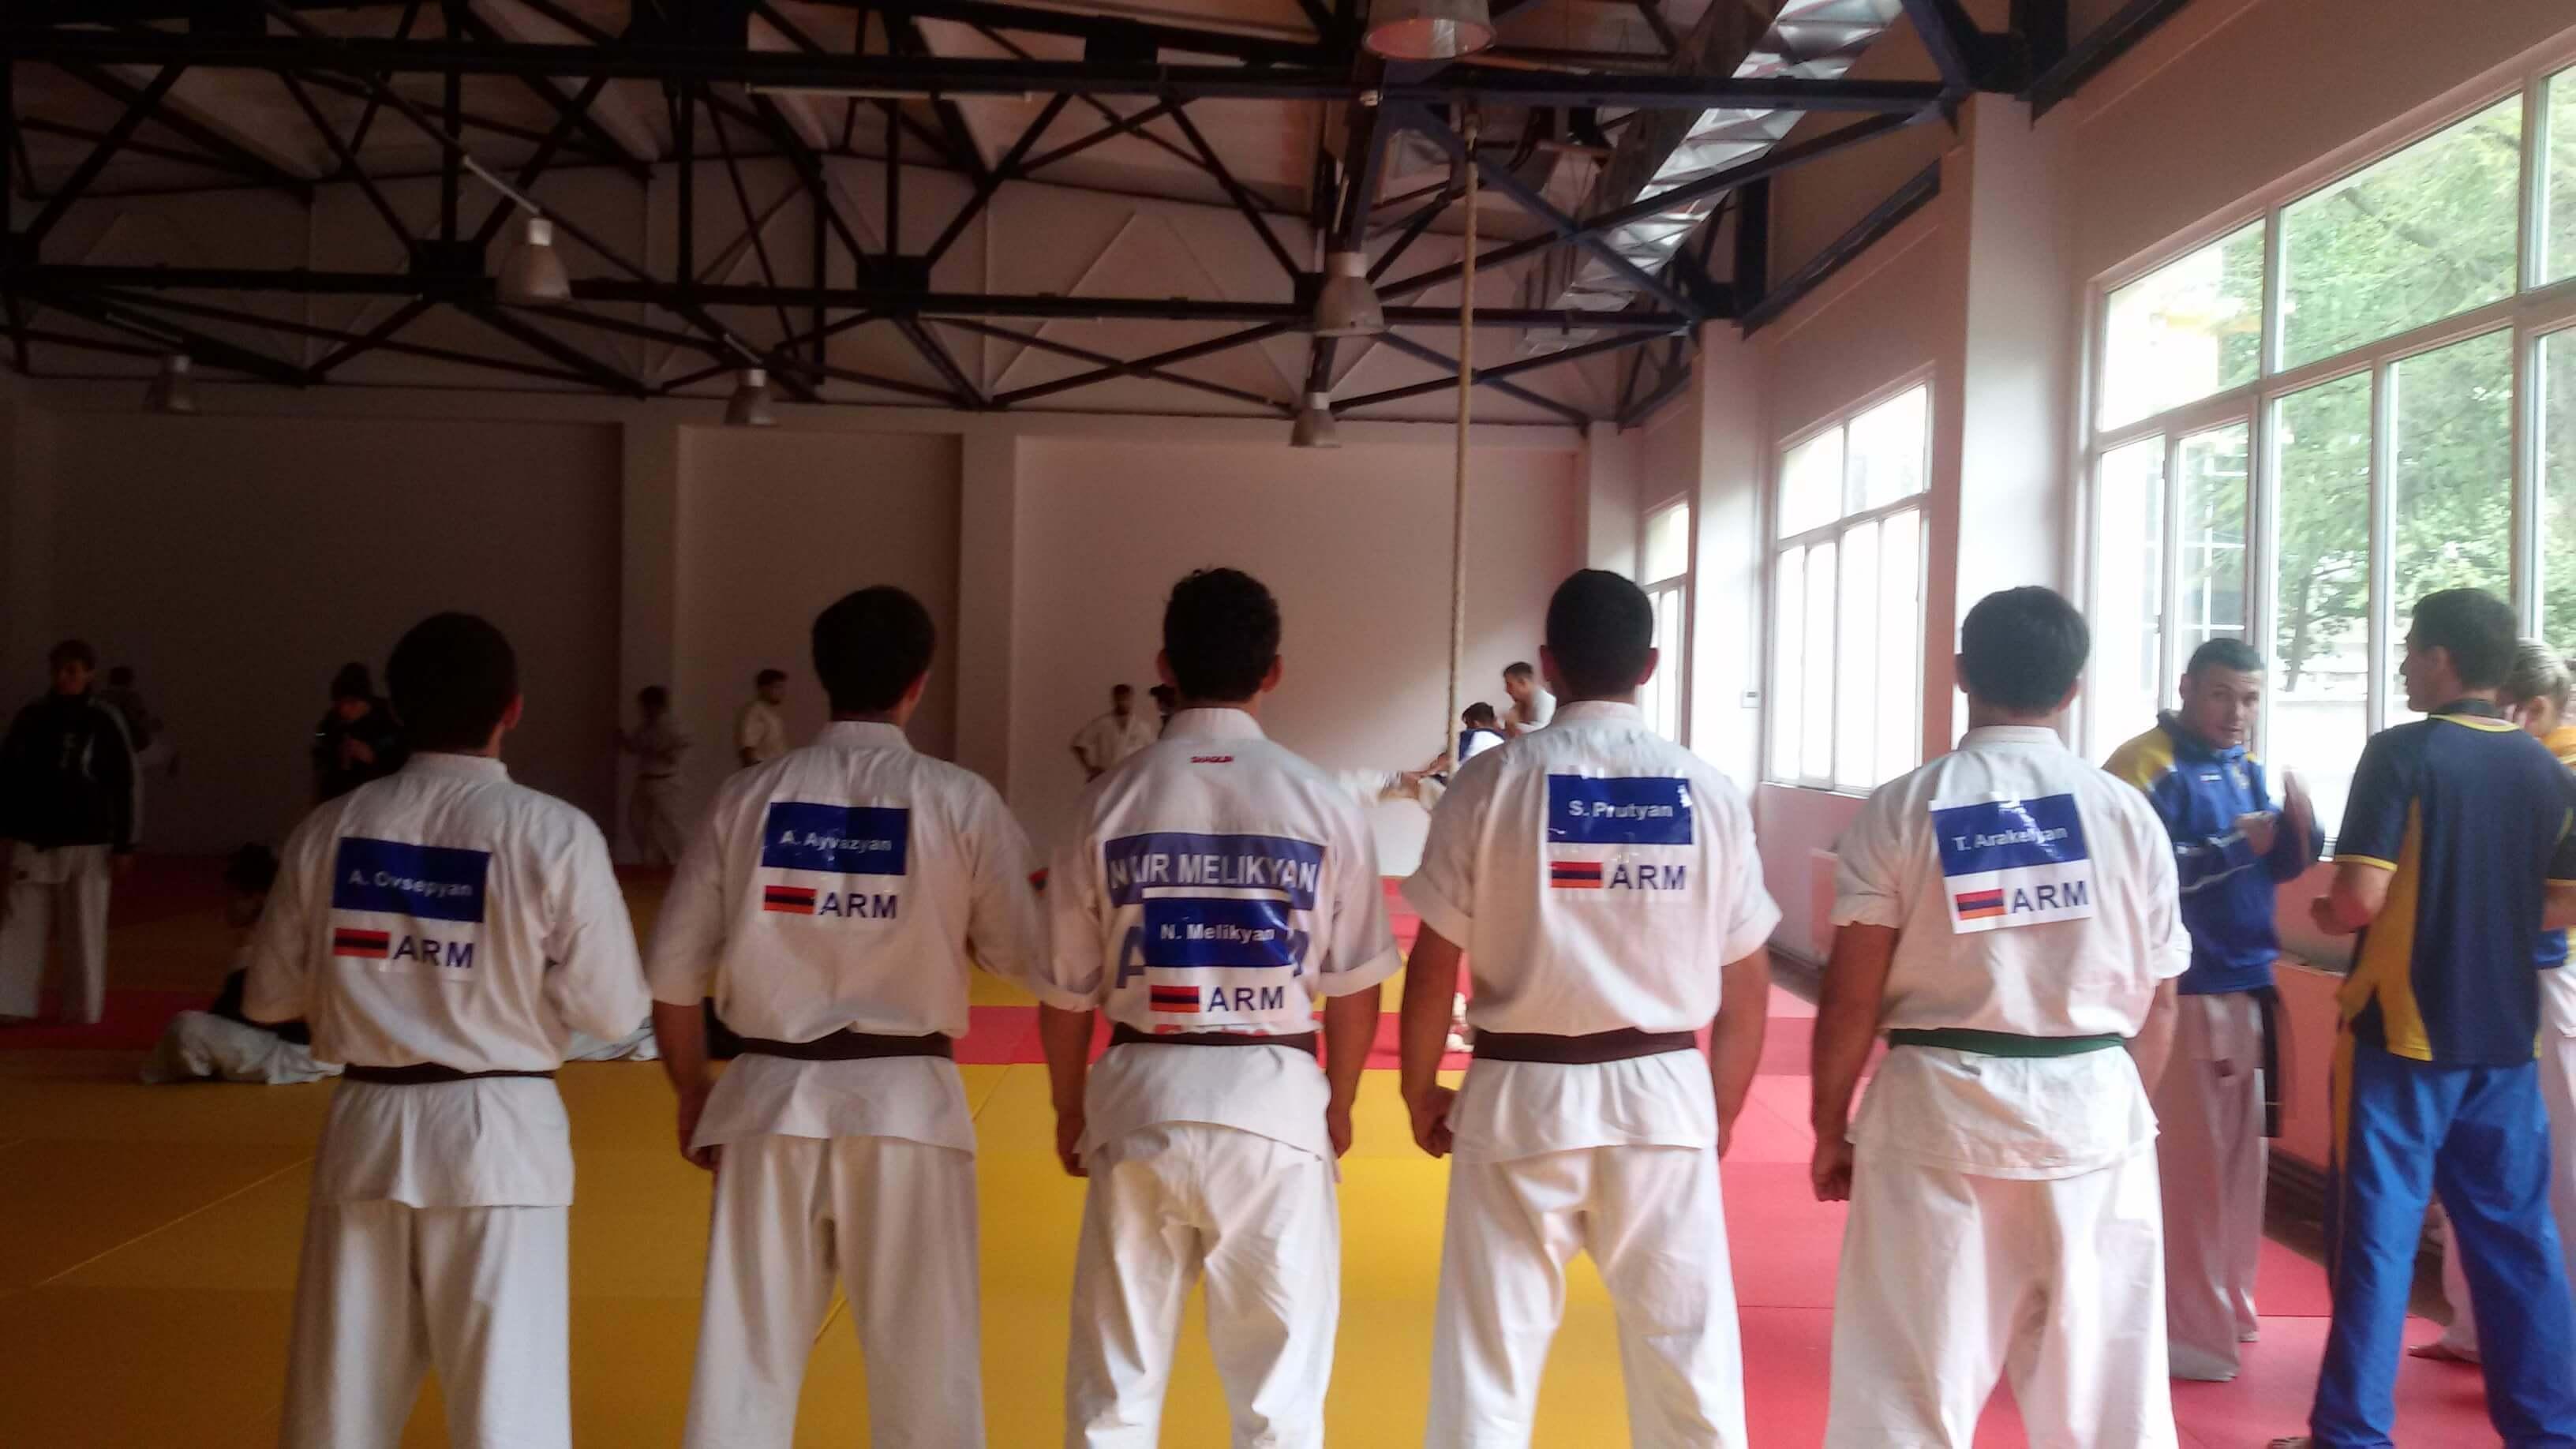 Federation of Shinkyokushin Karate of Armenia - Our team